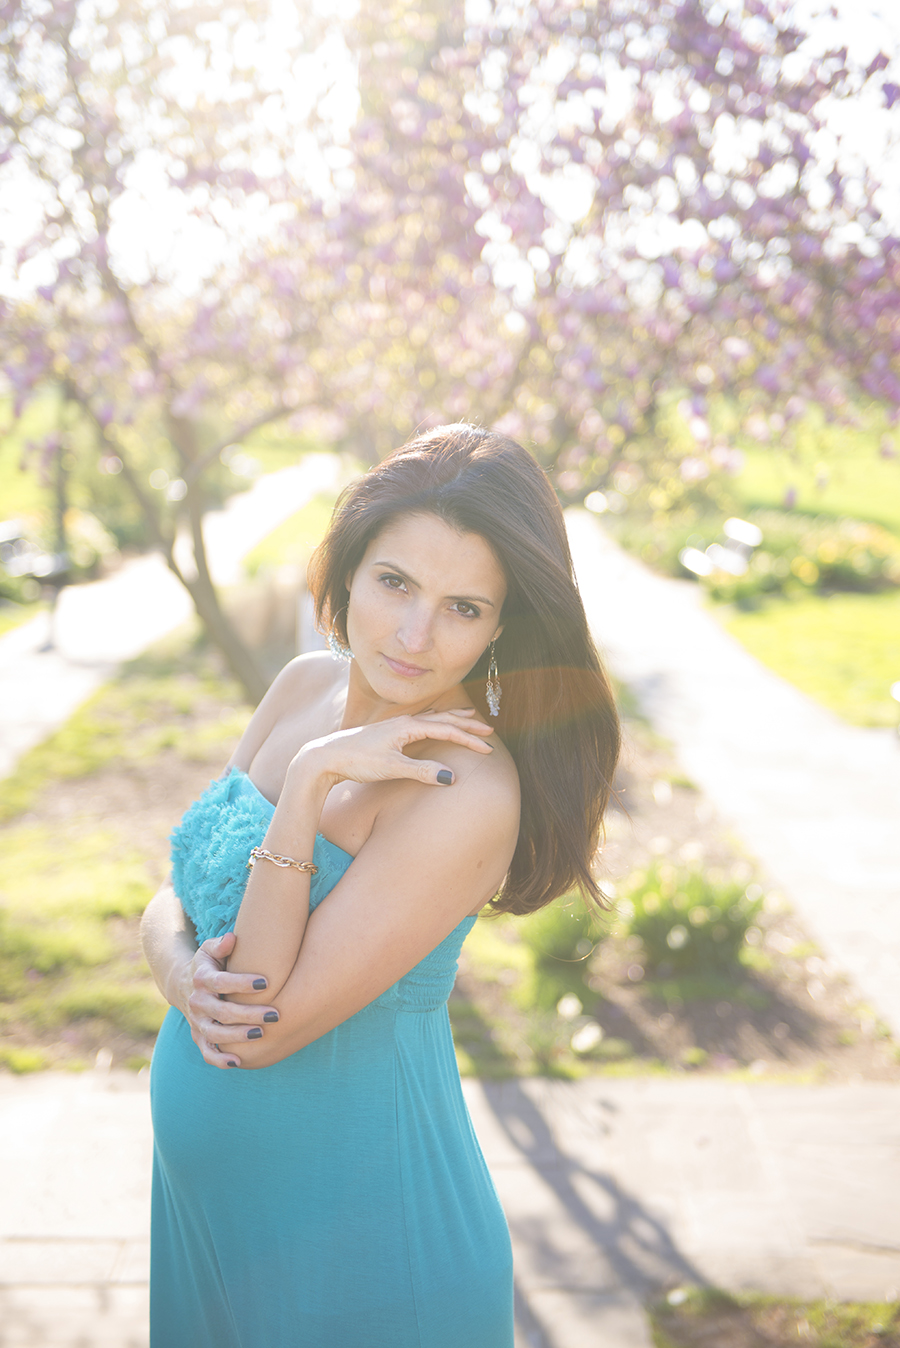 Daysy-Photography-Priscila-Beatriz-Brooks-Family-Engagement-Session-04.20.2014day_5091.jpg